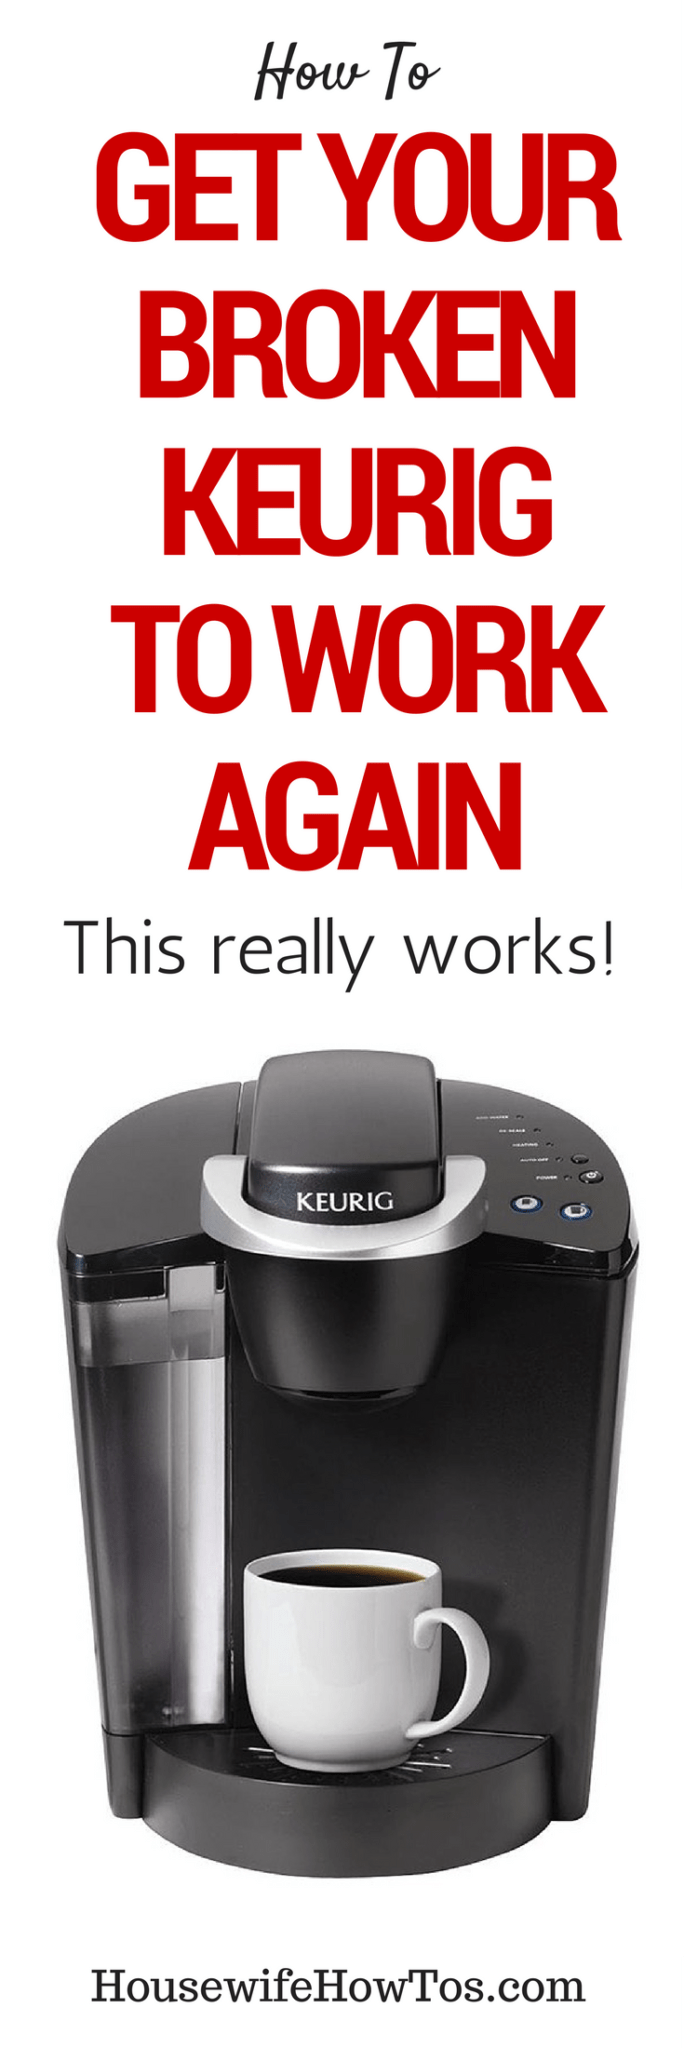 Keurig Coffee Maker Sputtering : Keurig special edition brewer problems